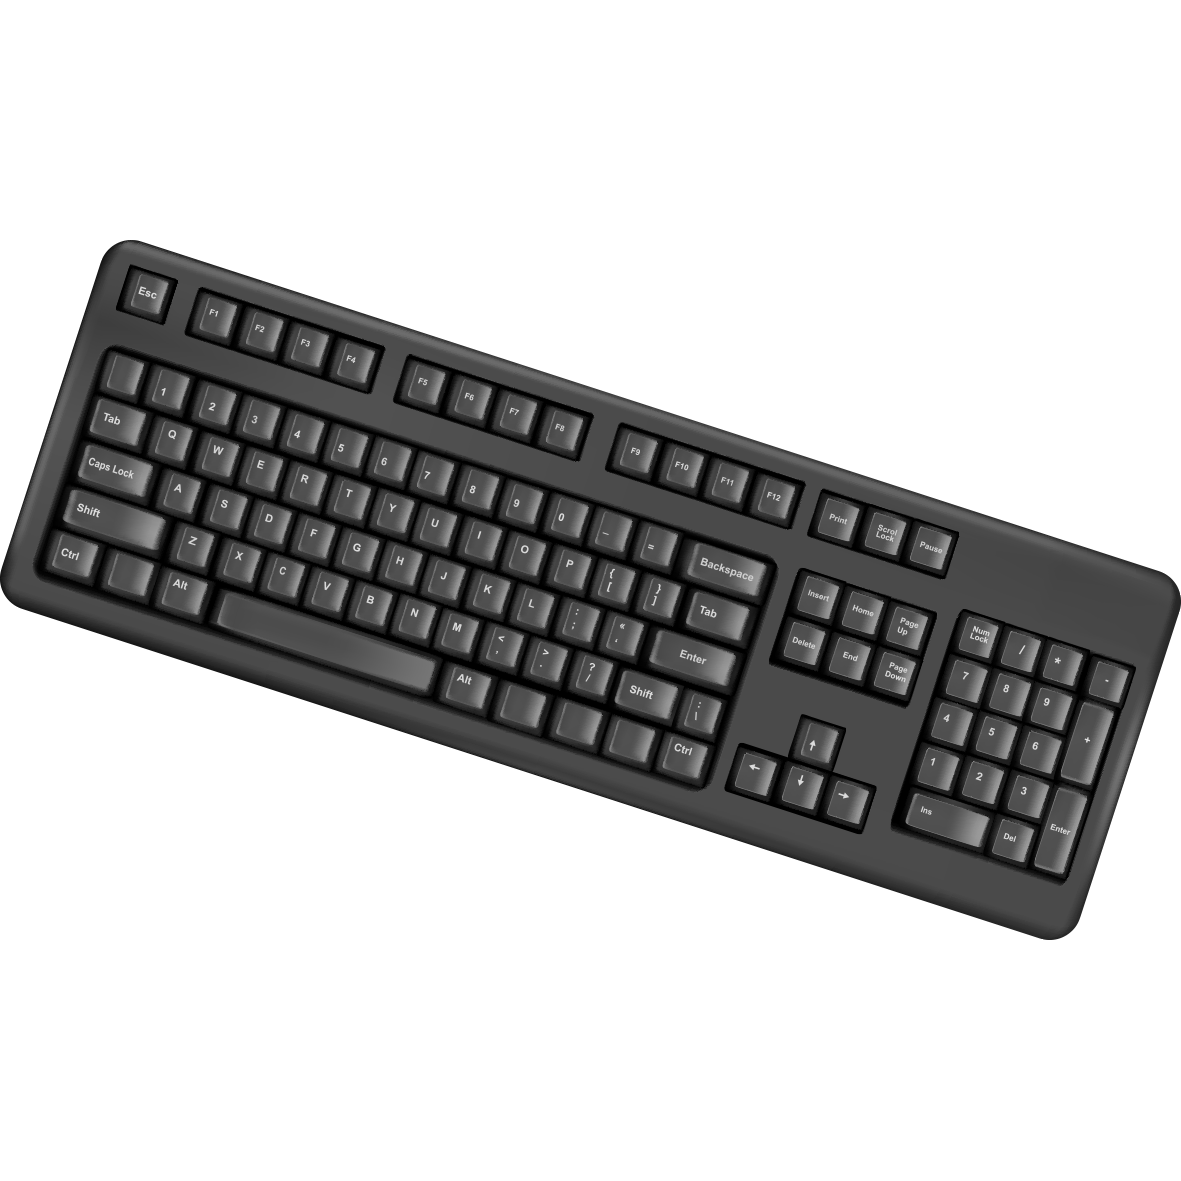 Free computer keyboard clipart picture library library Computer keyboard Laptop PS/2 port Clip art - Creative black ... picture library library